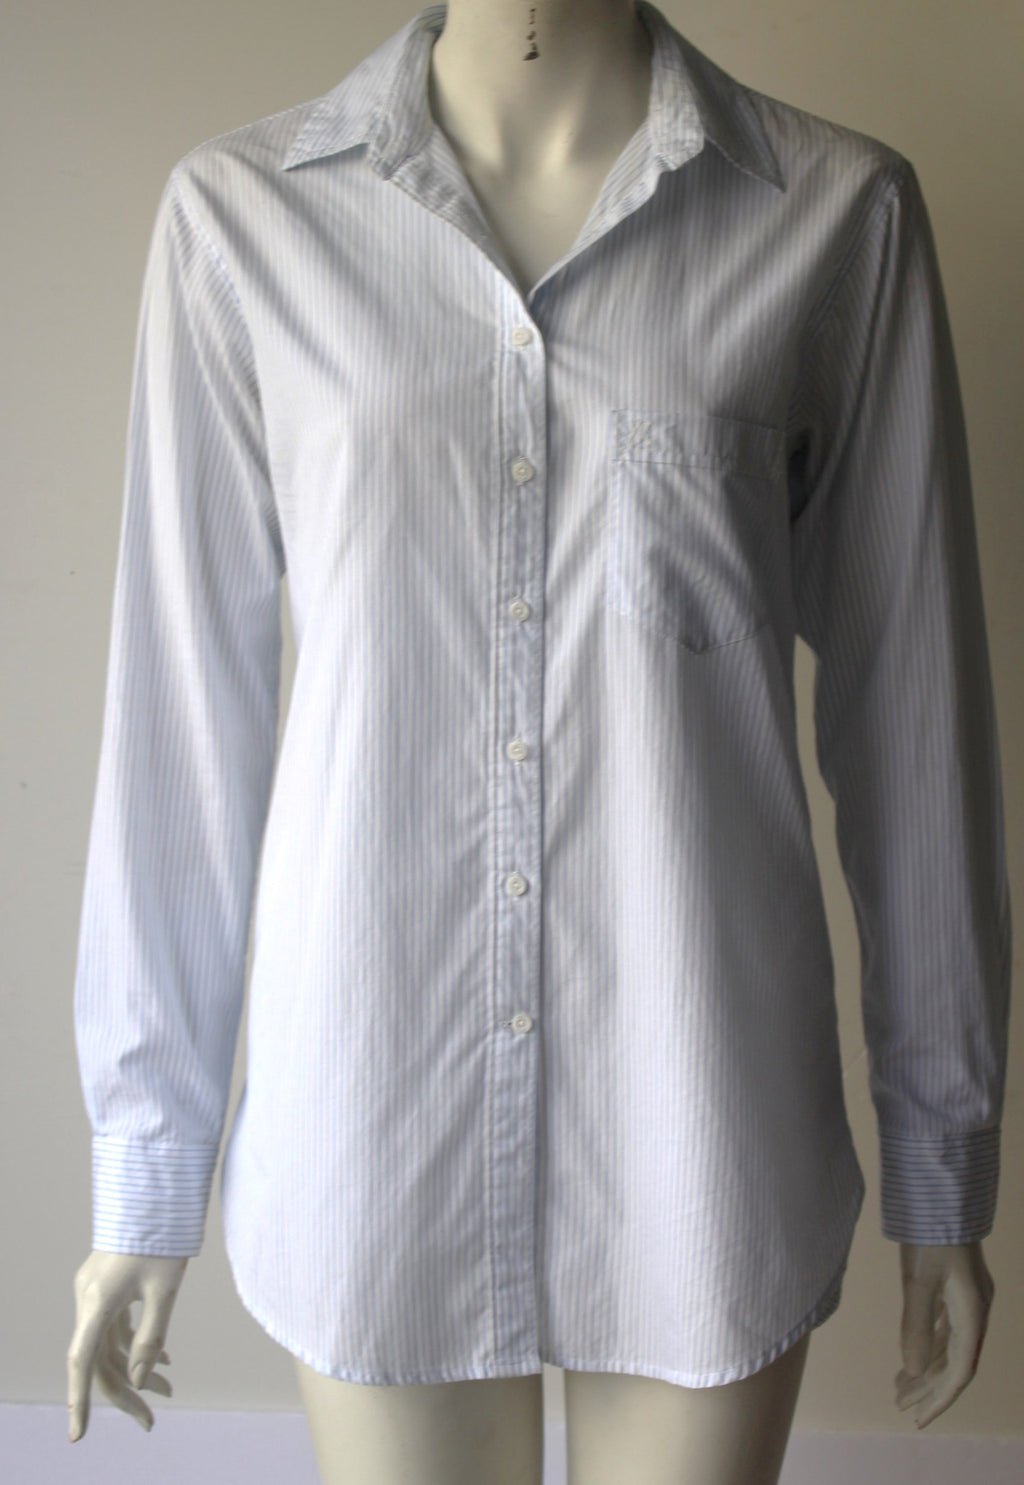 Talula Boyfriend Fit White & Blue Stripe Shirt - Joyce's Closet  - 1